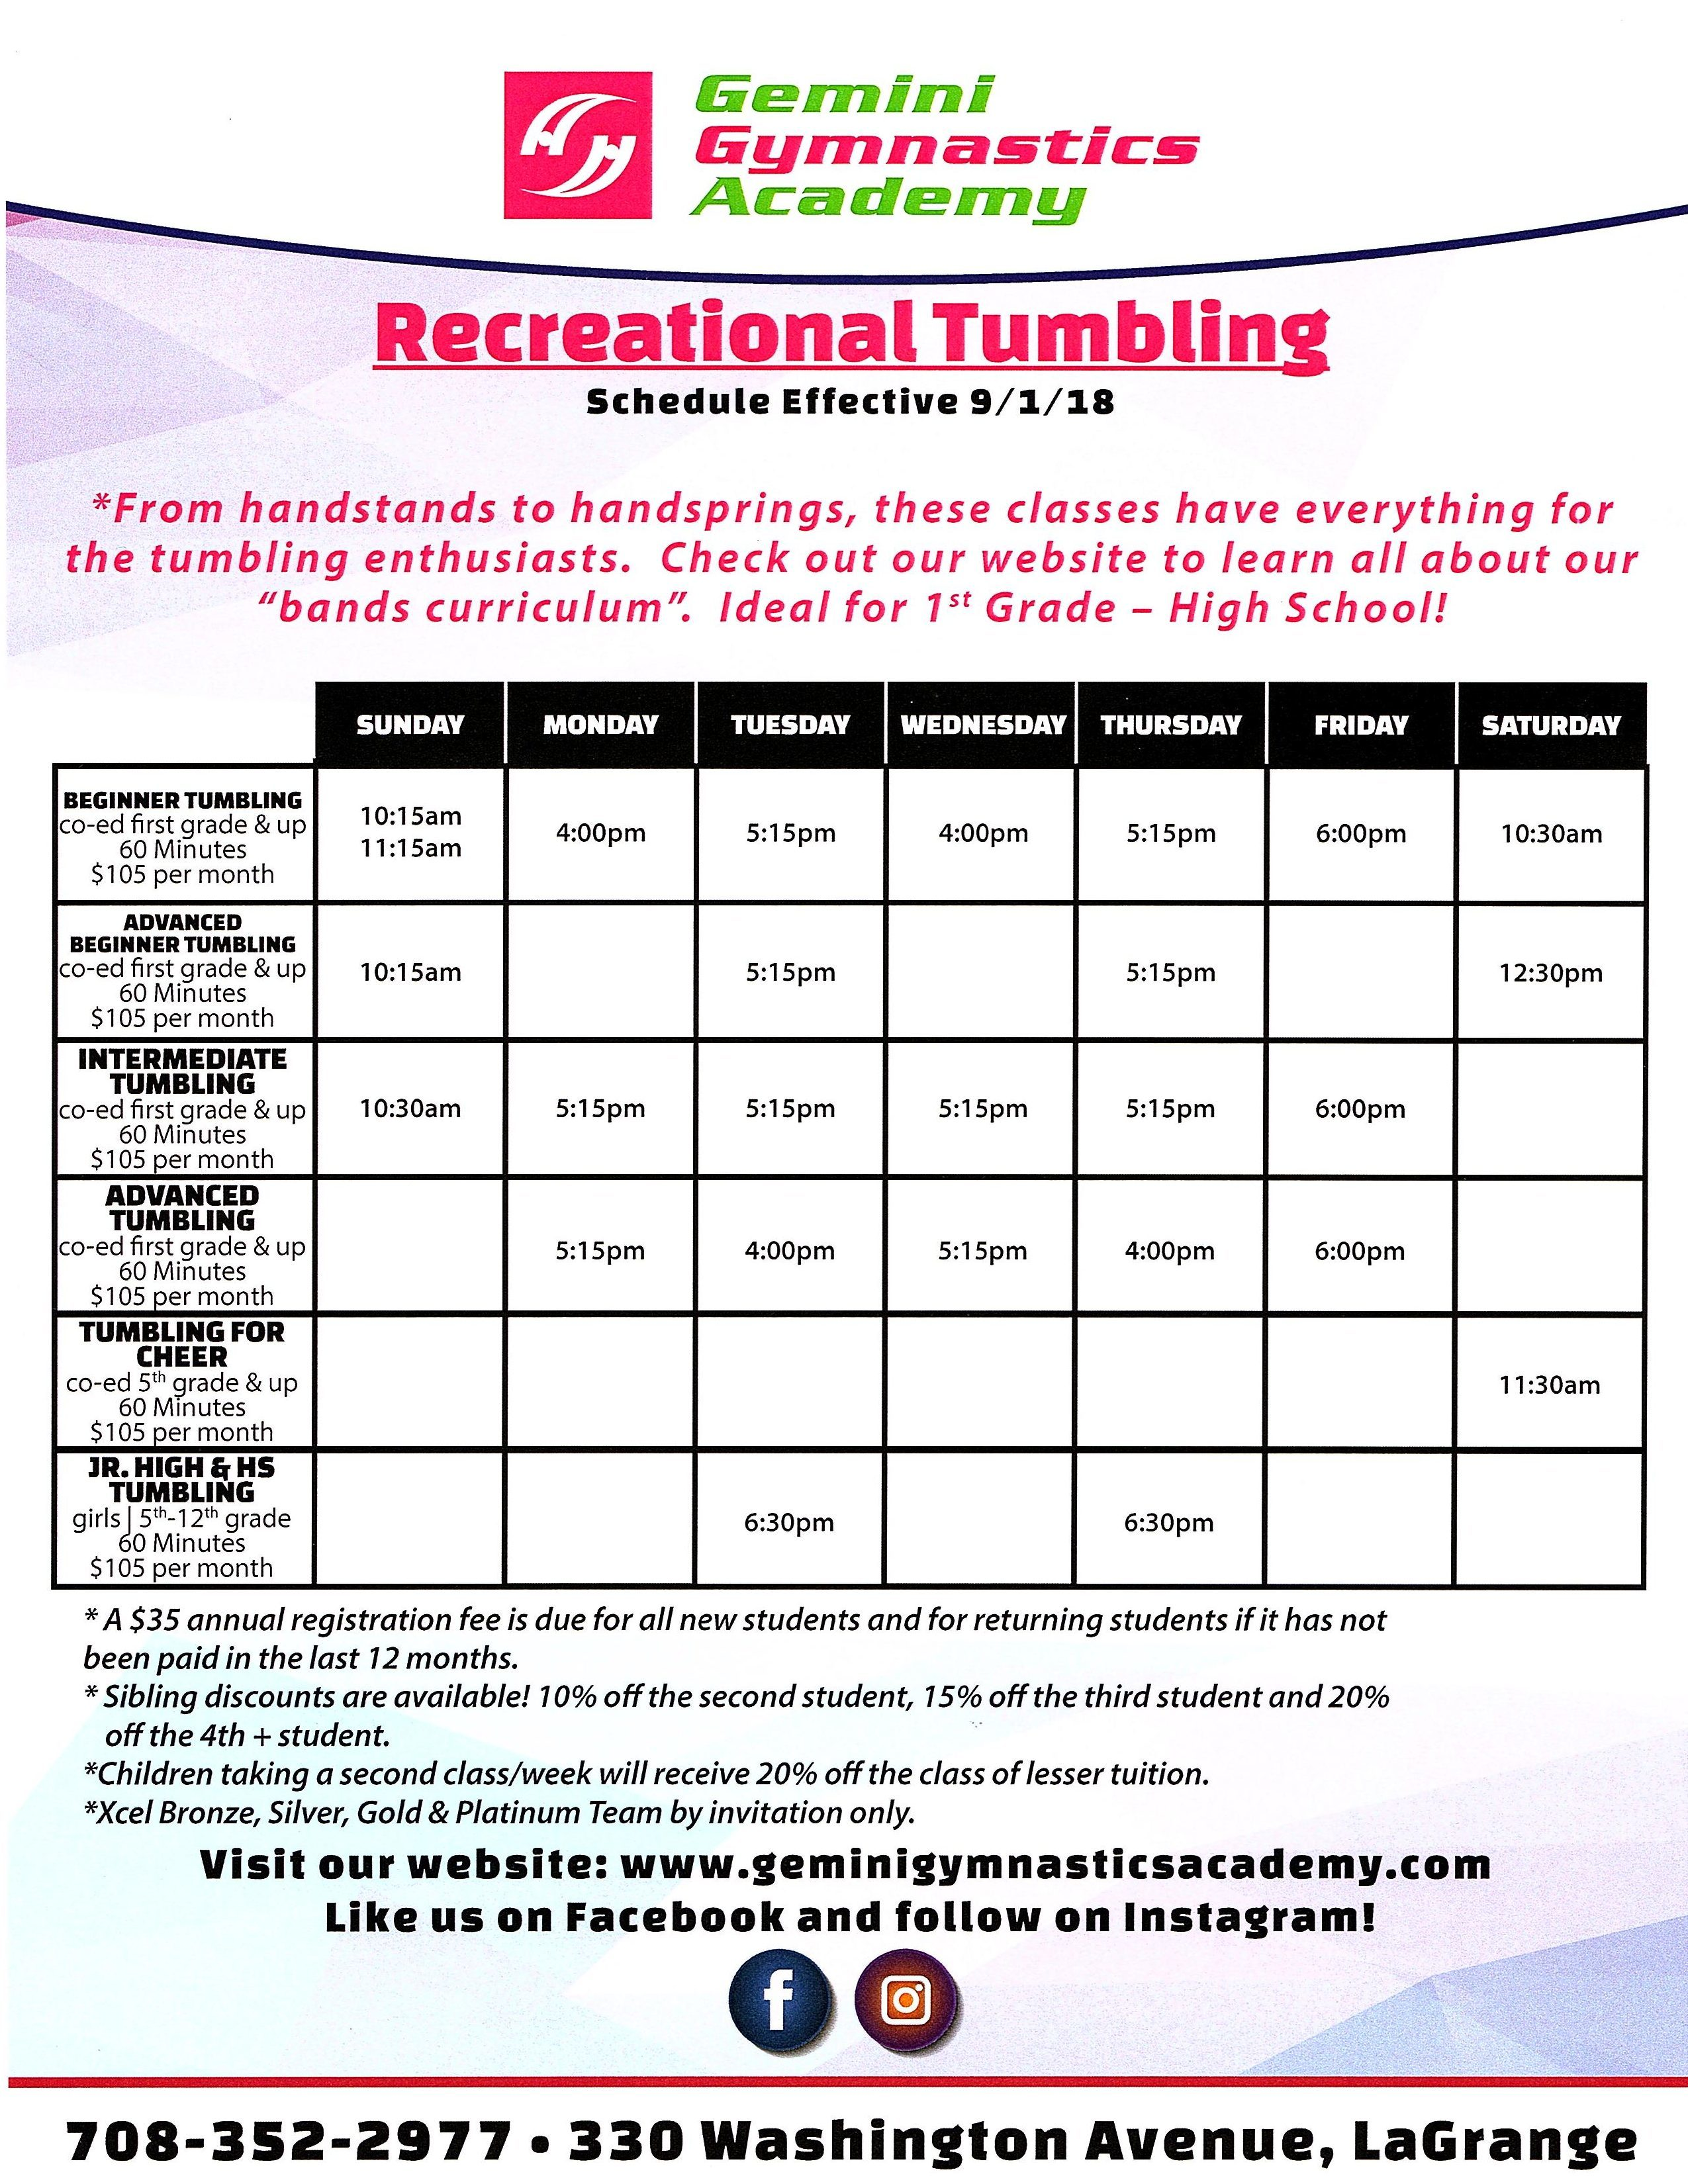 Recreational Tumbling schedule